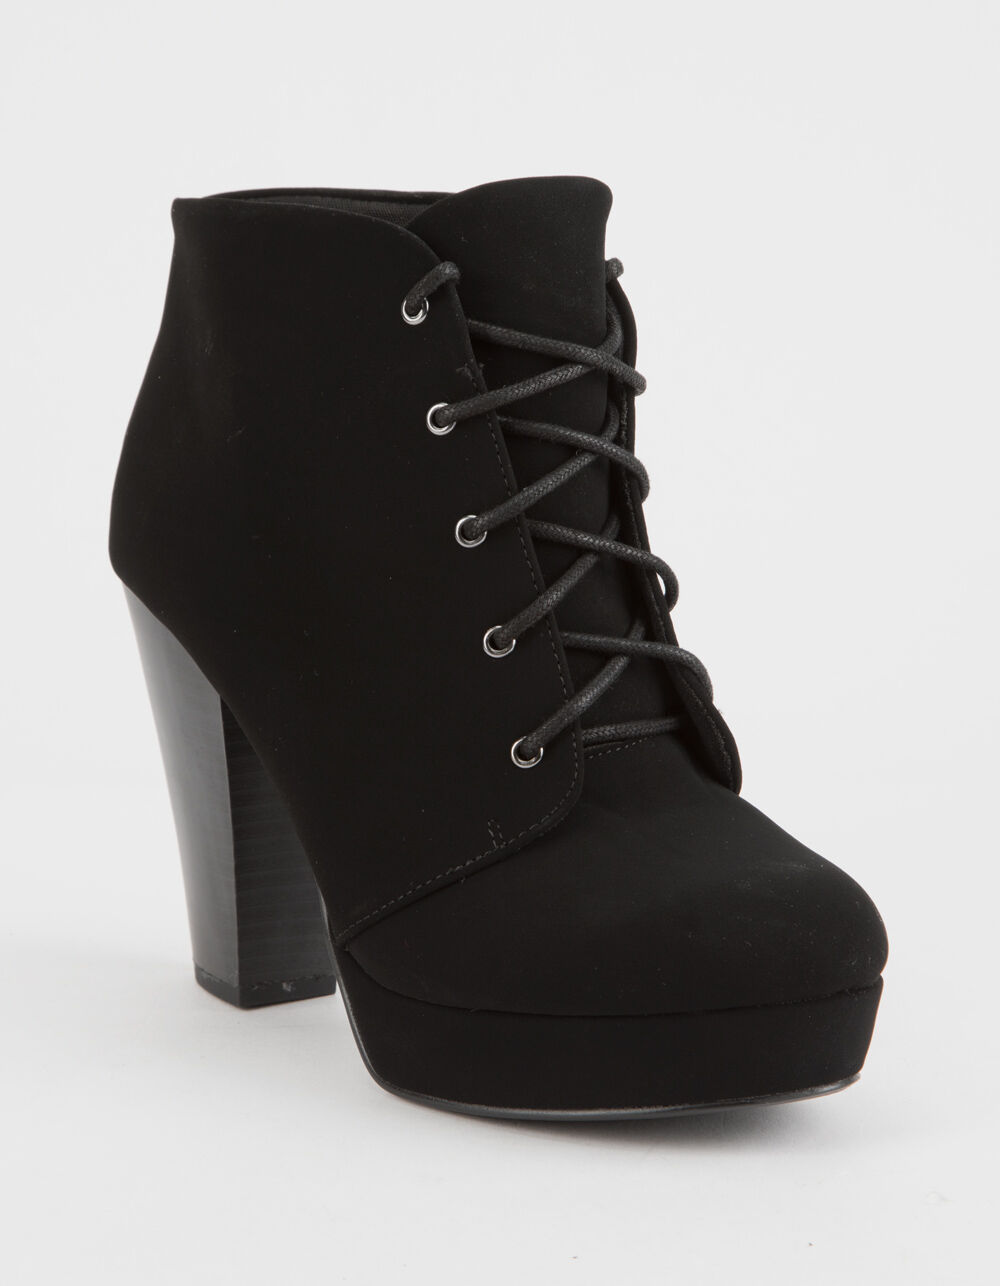 SODA Lace Up Black Heeled Booties